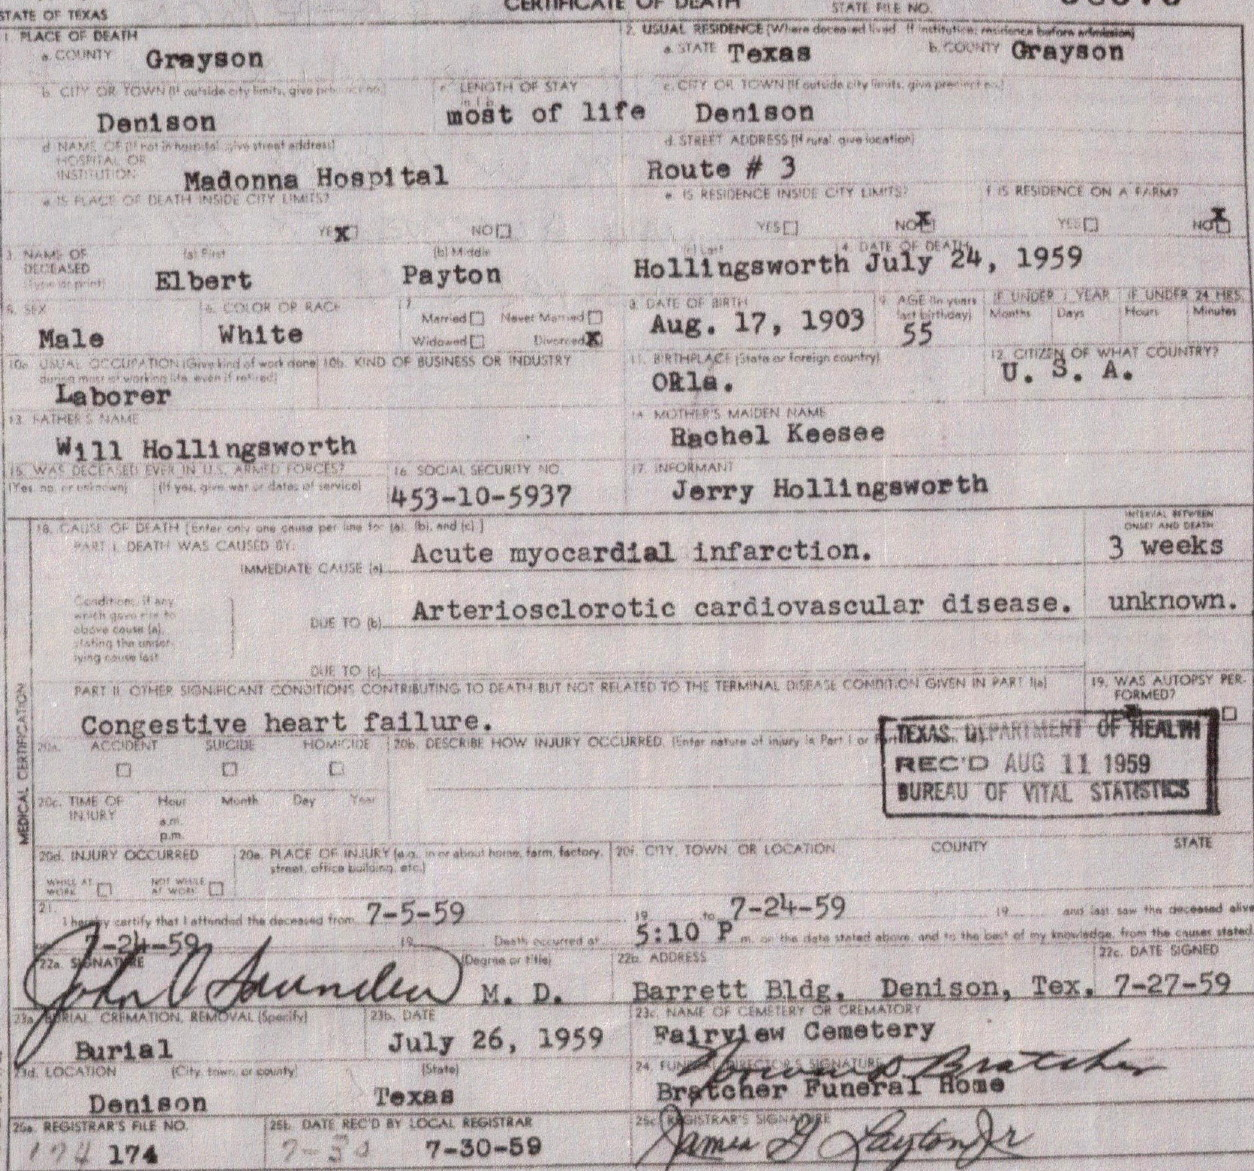 Elbert Hollingsworth's death certificate.